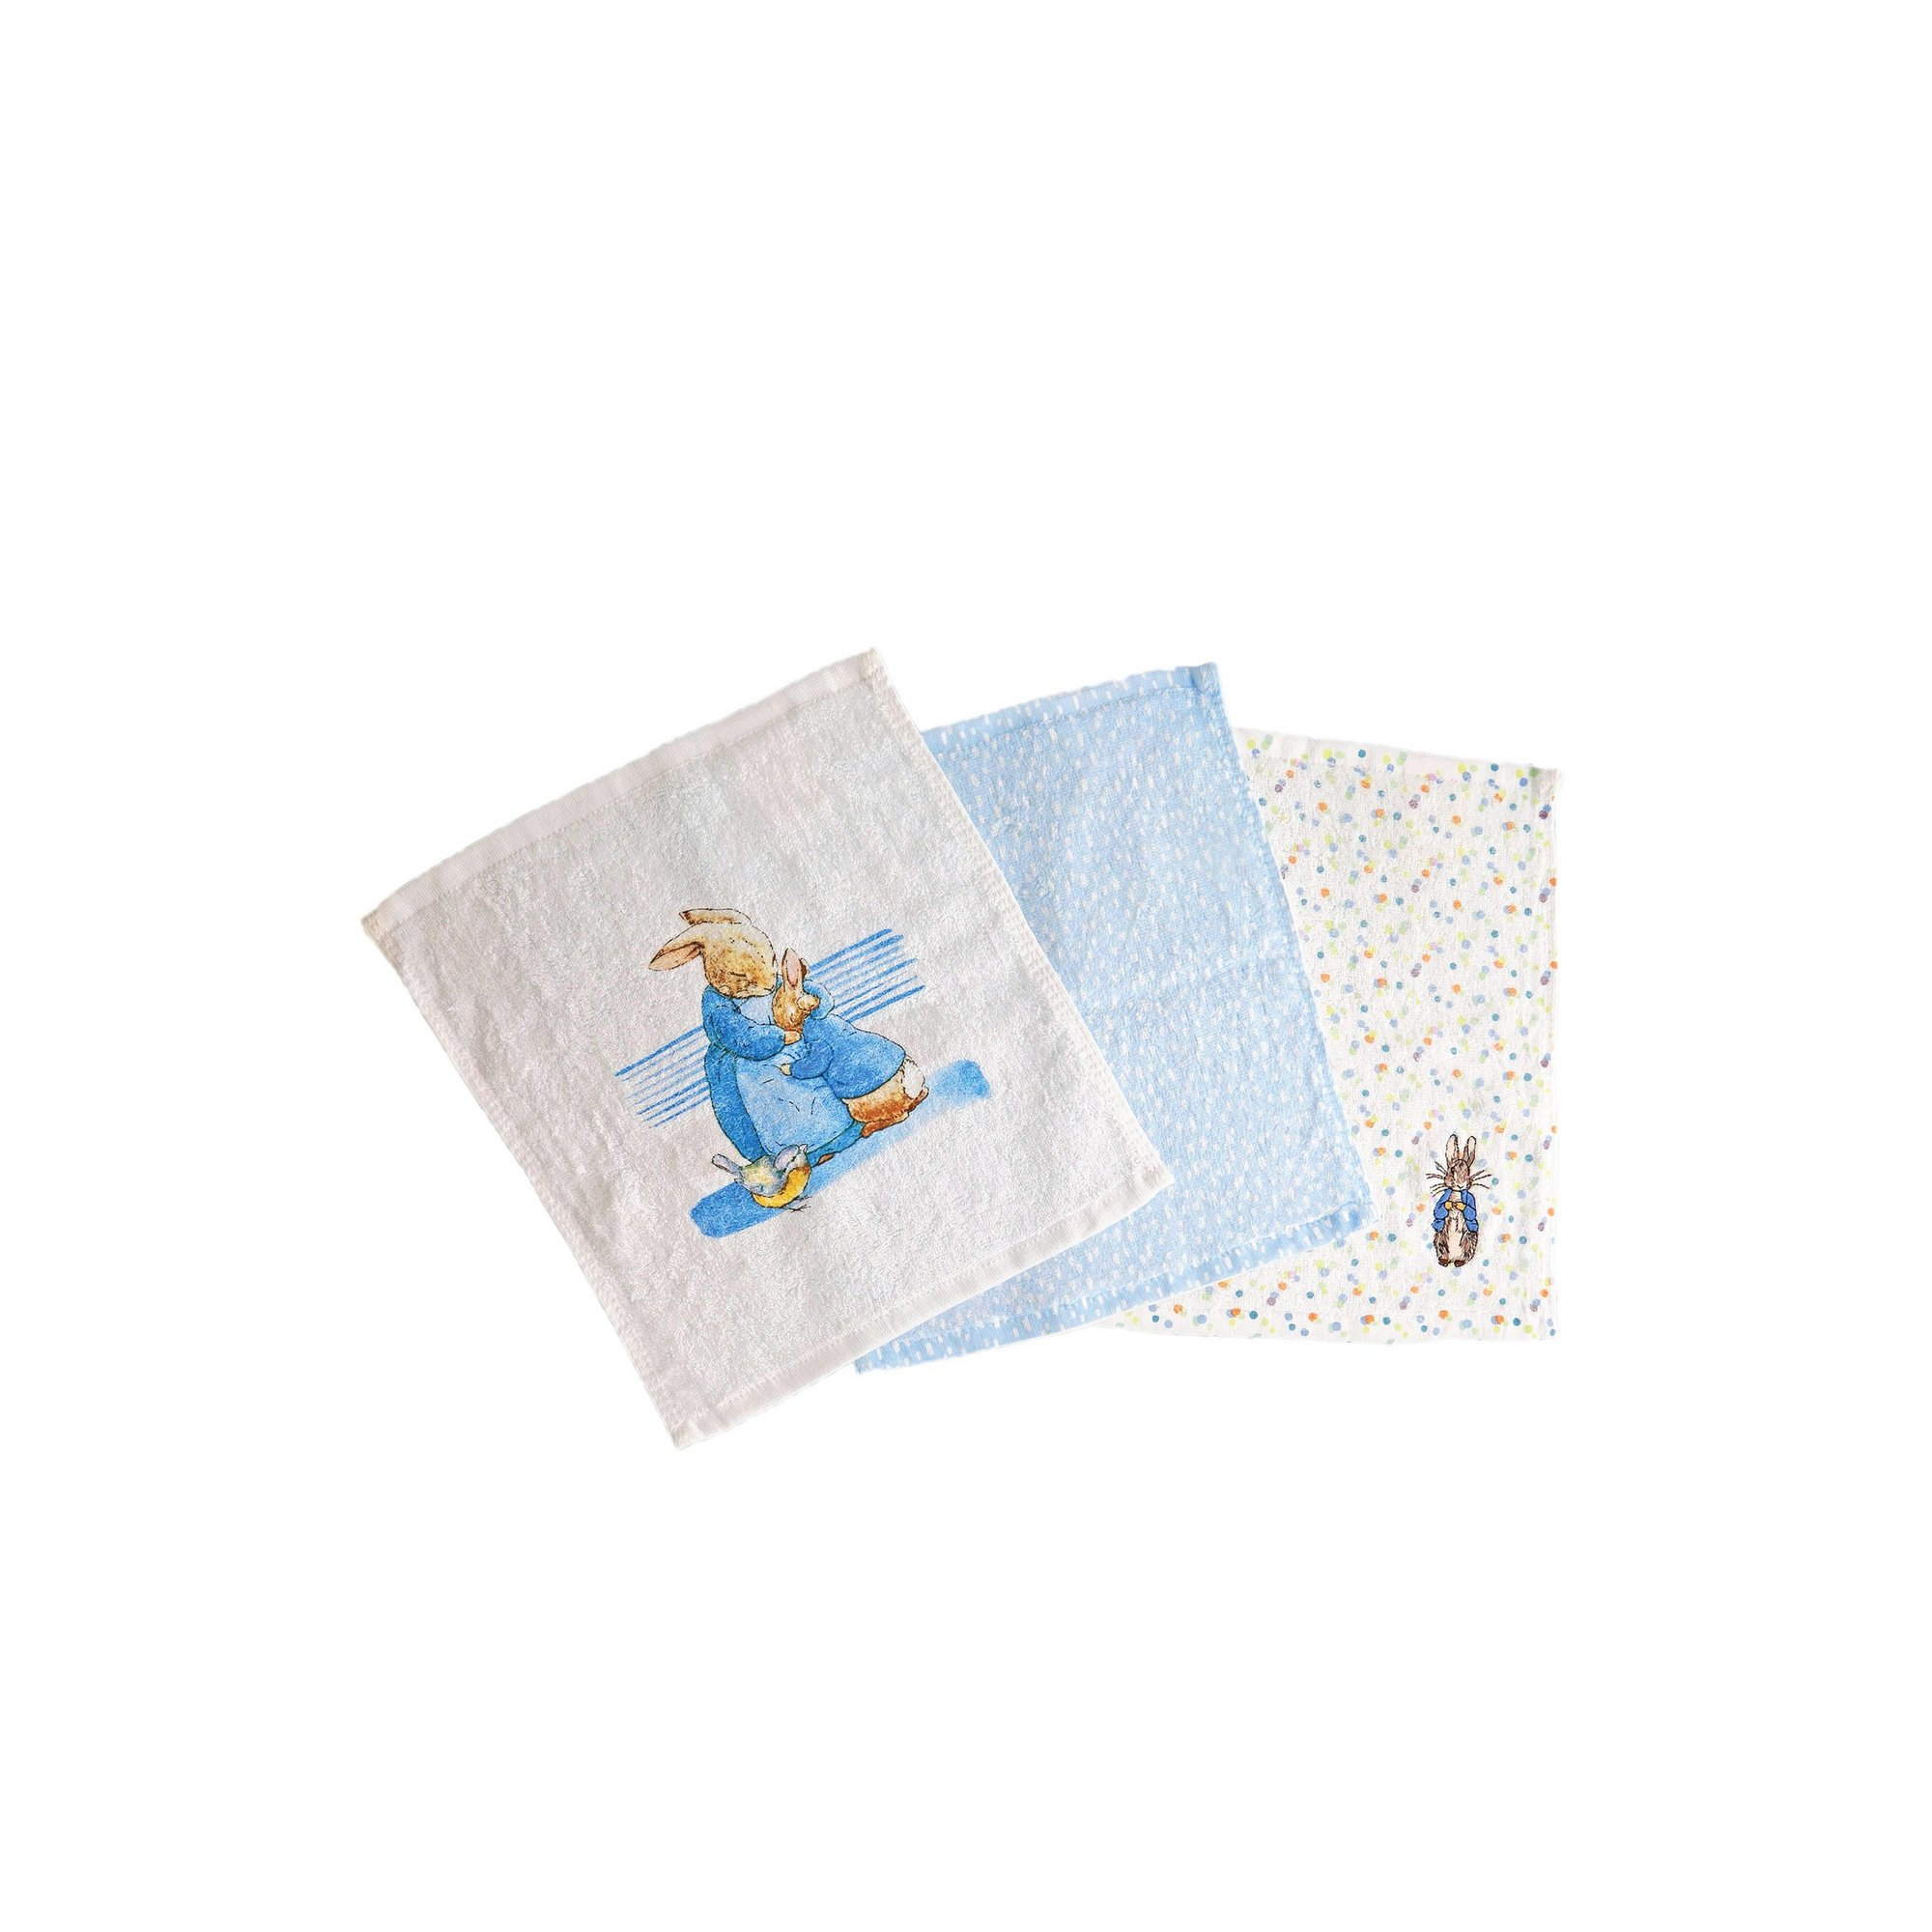 Image of Pack of 3 Peter Rabbit Collection Baby Face Cloths